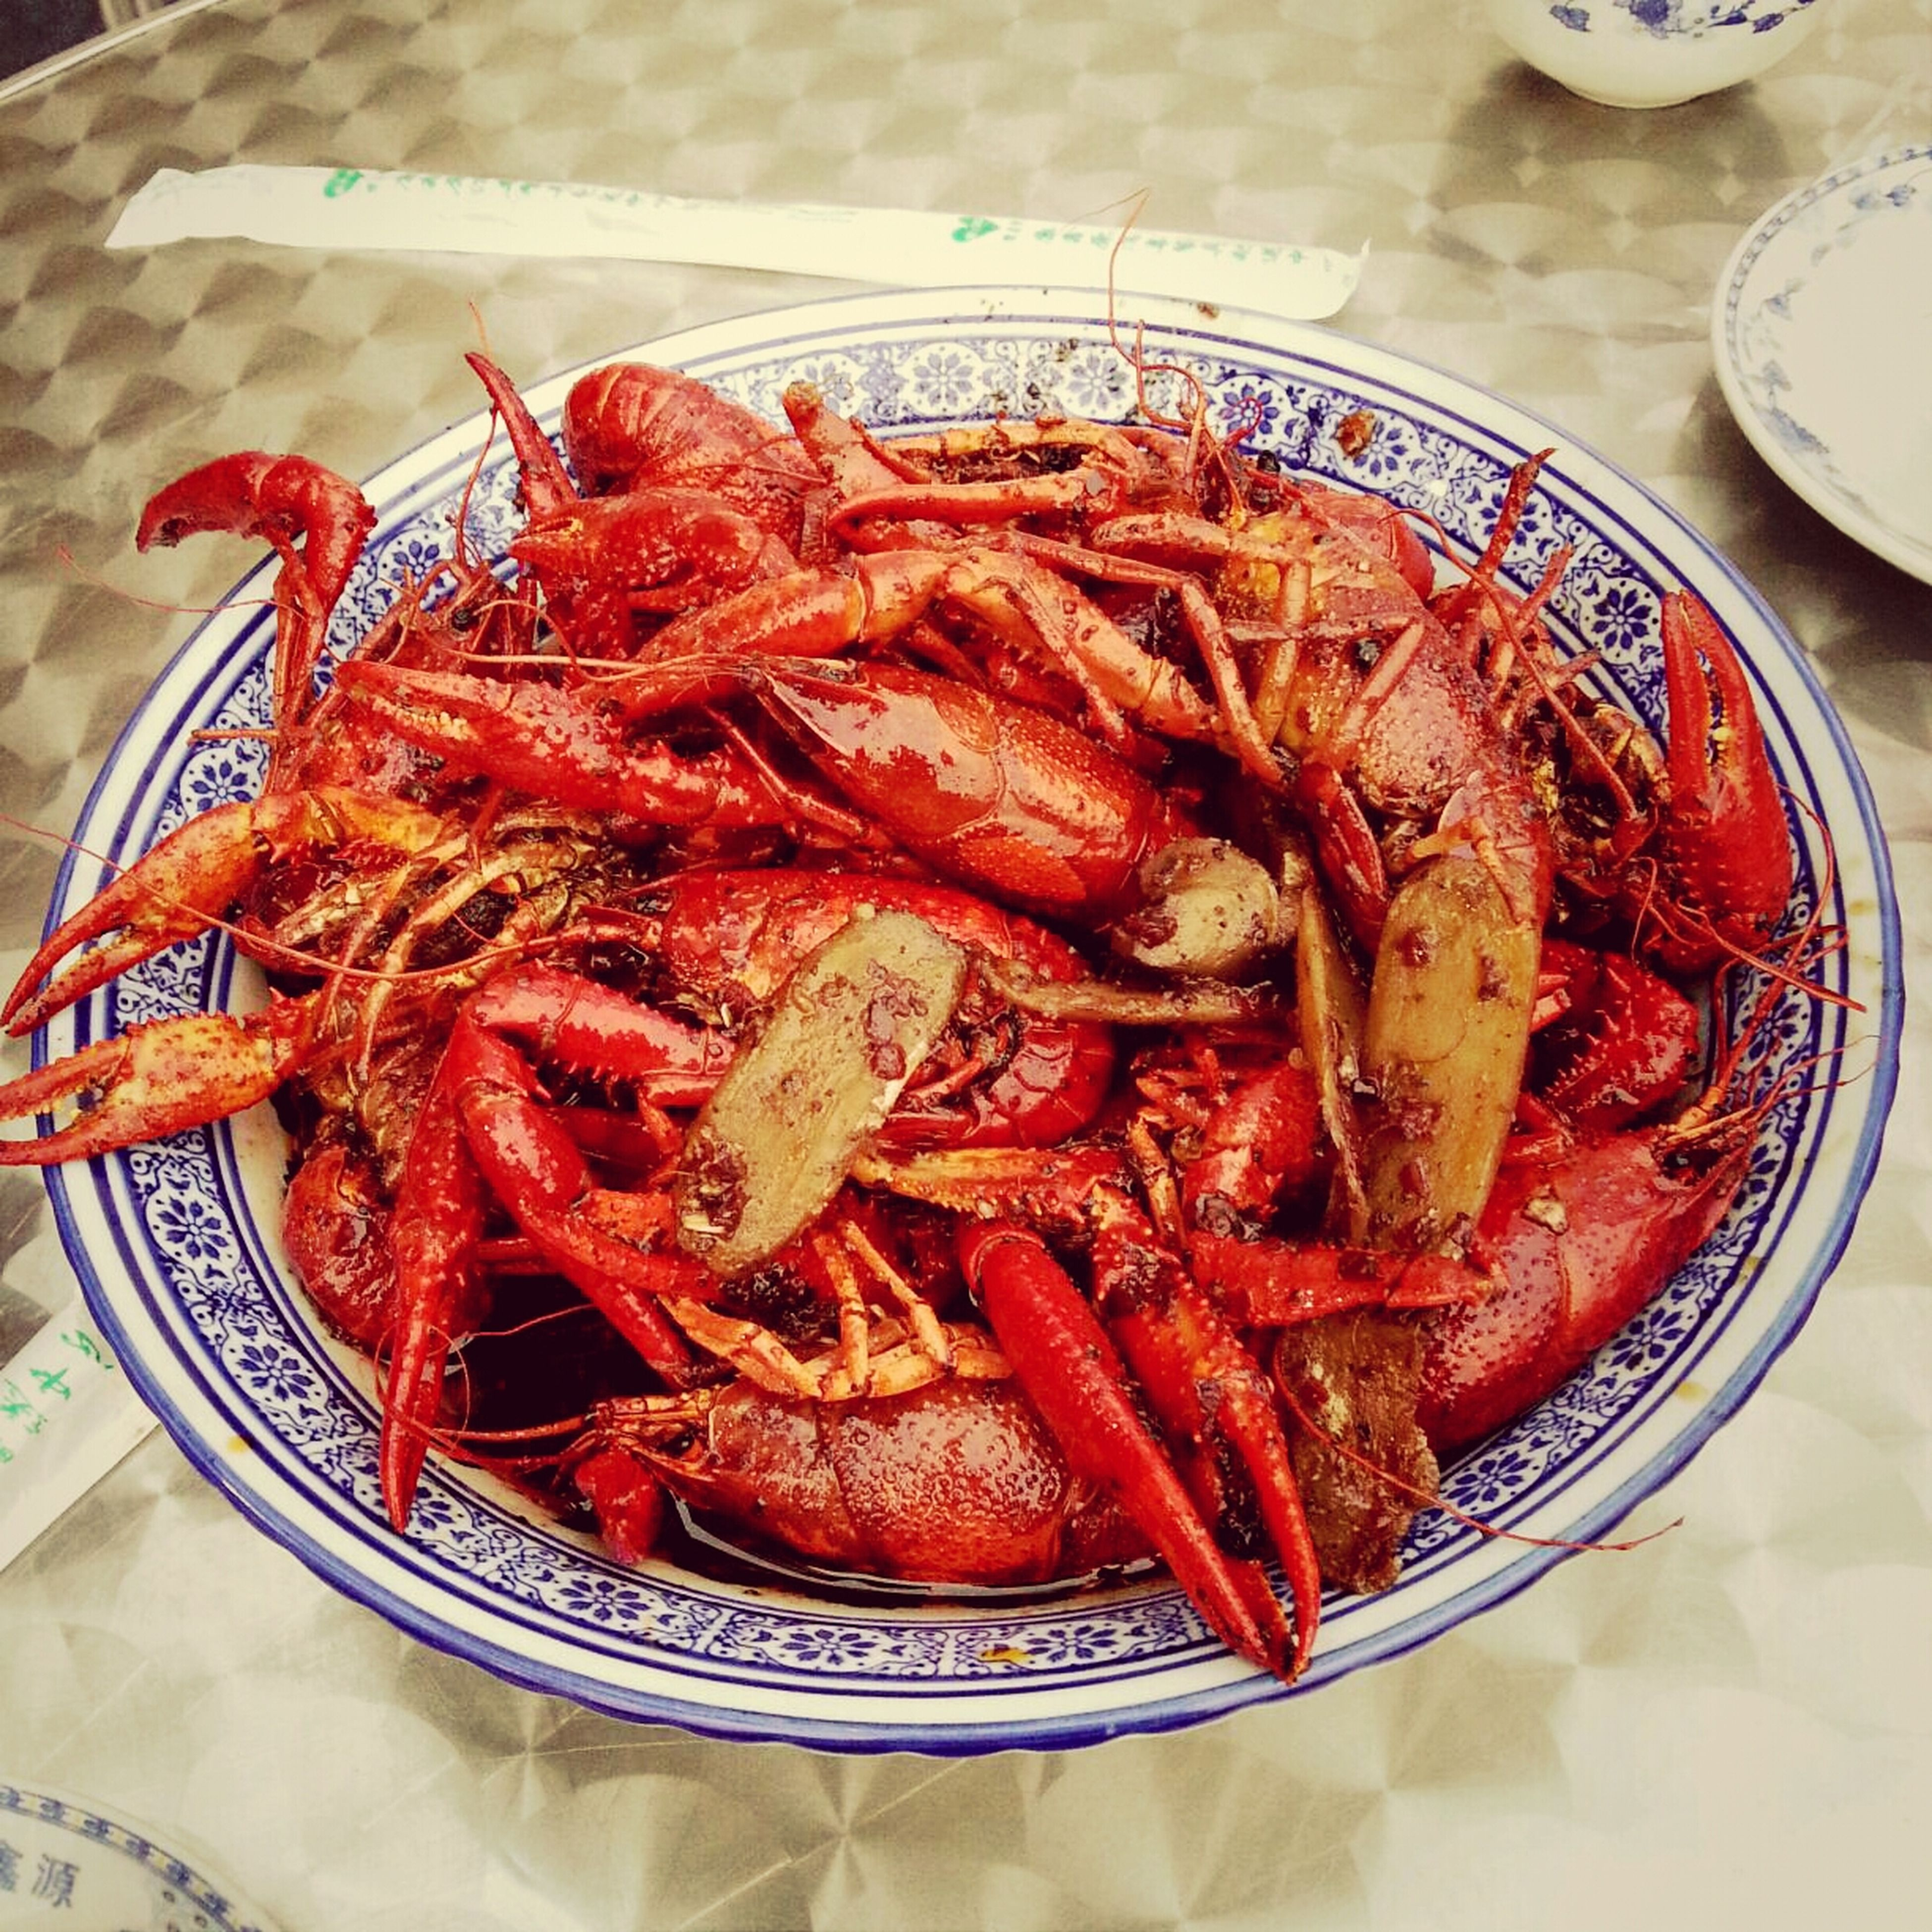 food, food and drink, freshness, indoors, healthy eating, seafood, ready-to-eat, still life, plate, high angle view, meat, meal, close-up, serving size, table, shrimp, indulgence, prawn, cooked, red